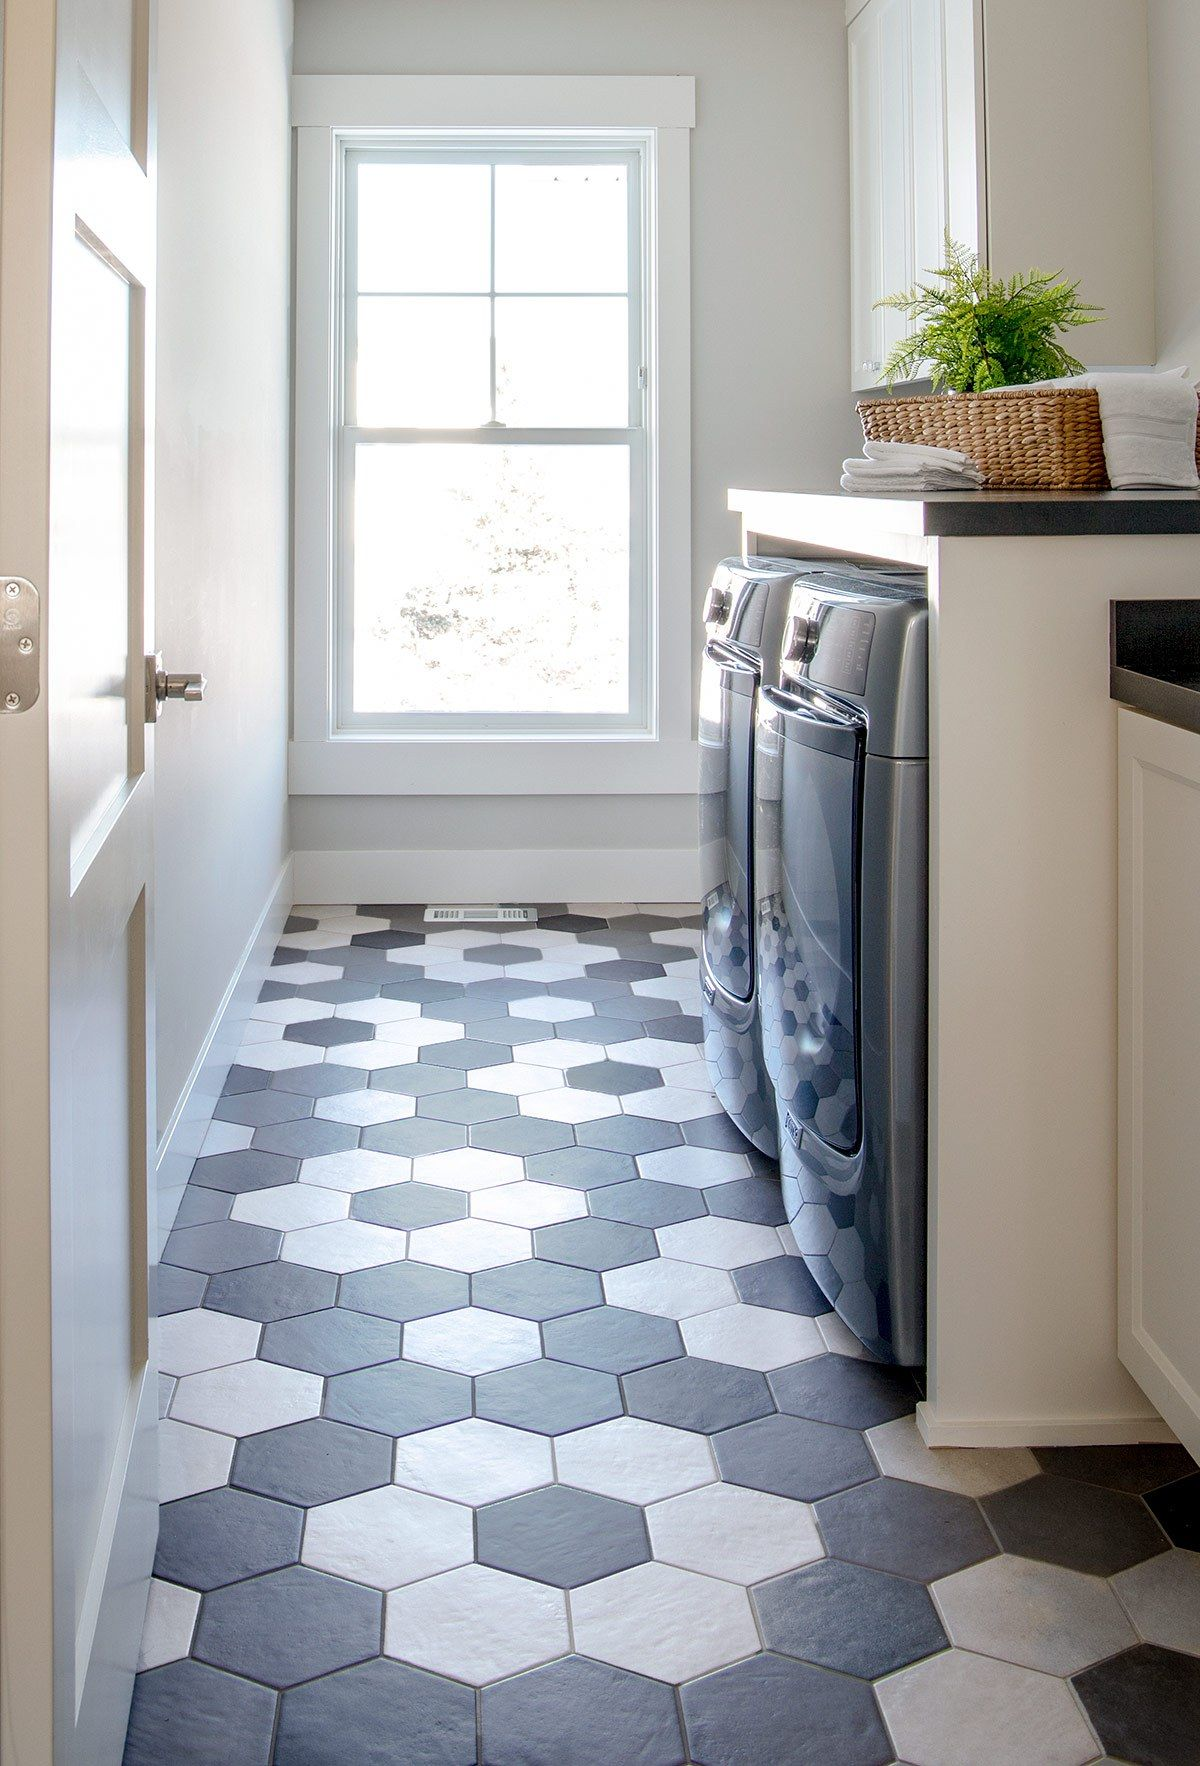 Black And White Decorating Laundry Room With Black And White Pattern Tile Floors White Laundry Rooms Patterned Floor Tiles Laundry Room Tile